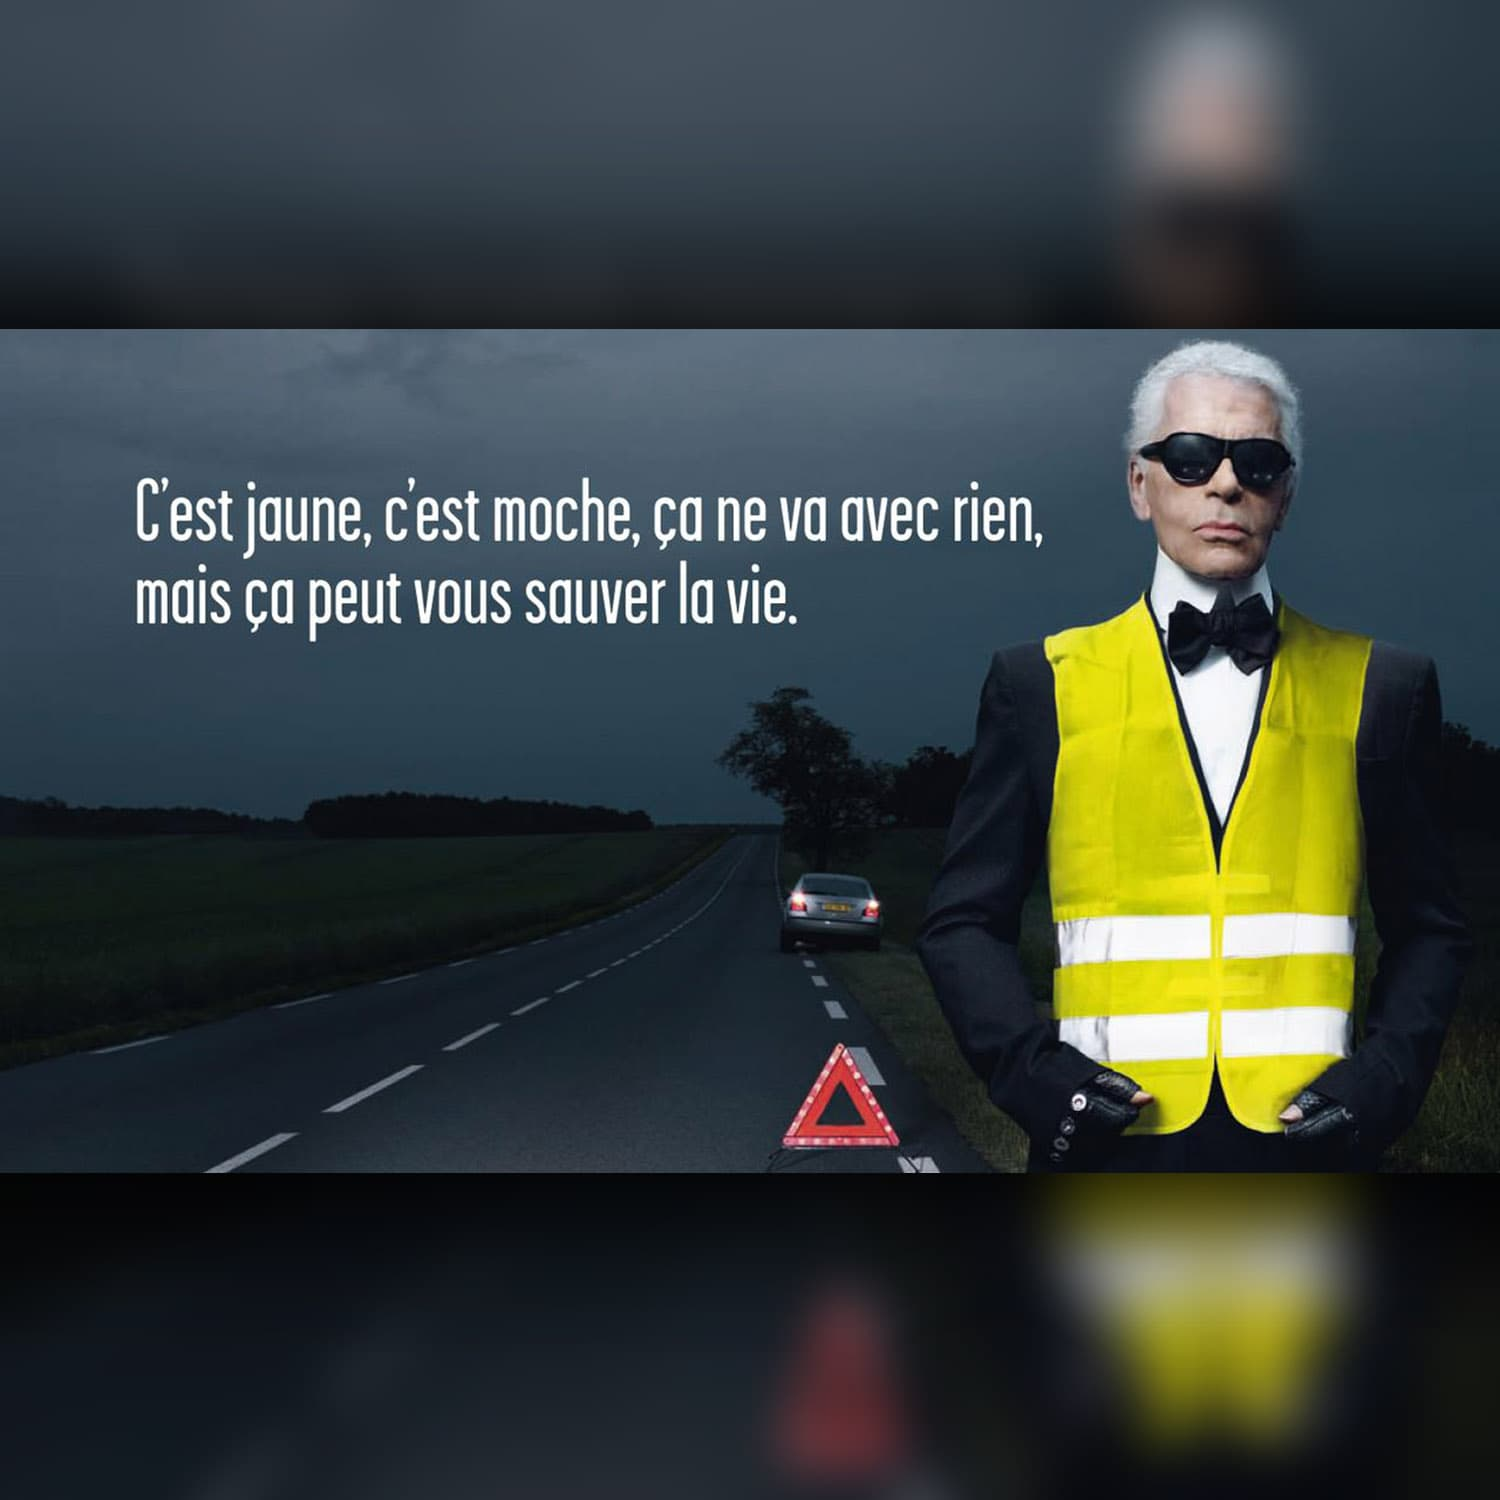 Karl Lagerfeld - Commercial for yellow vests